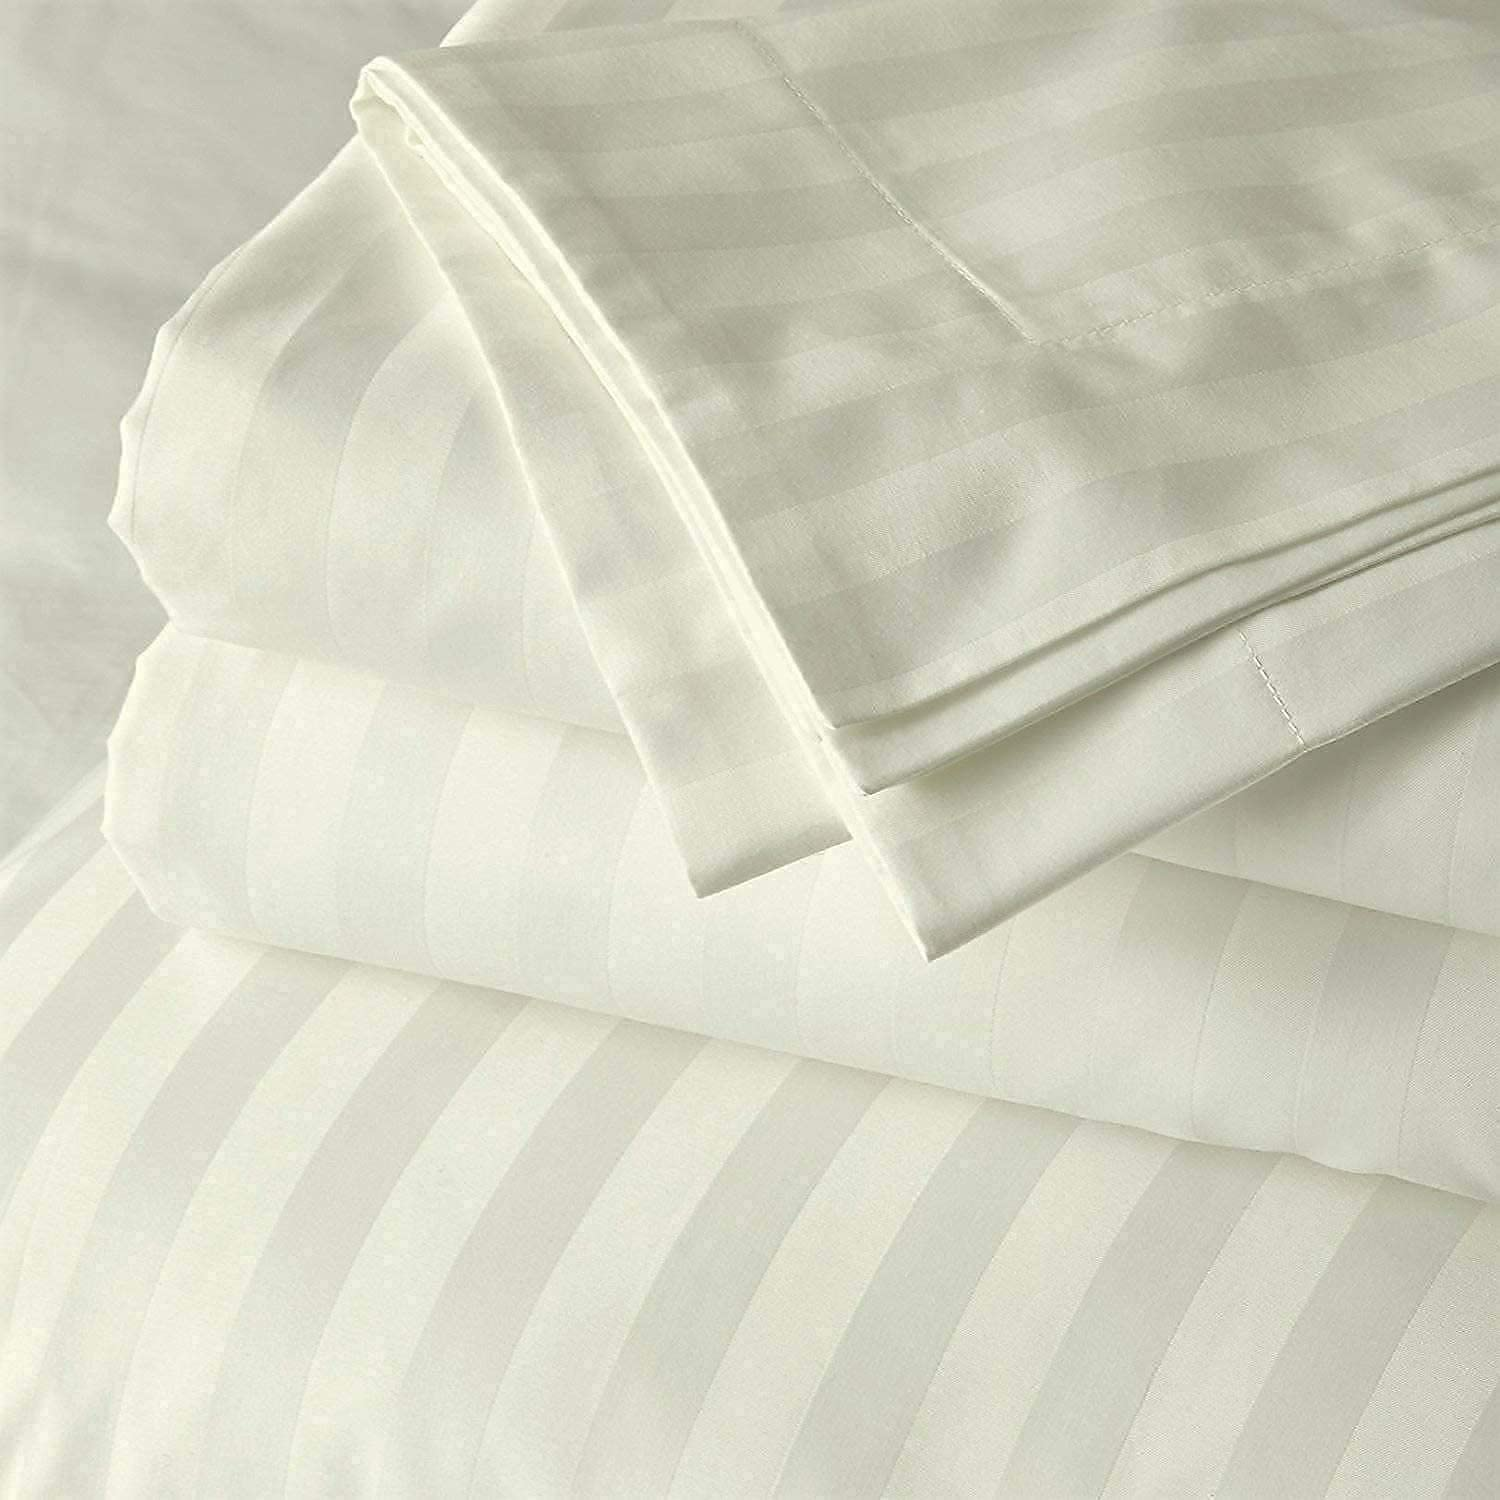 Split Max 63% OFF Top Queen Bed Sheet Sets 100% Egyptian Chicago Mall Thread Cotton 800 -